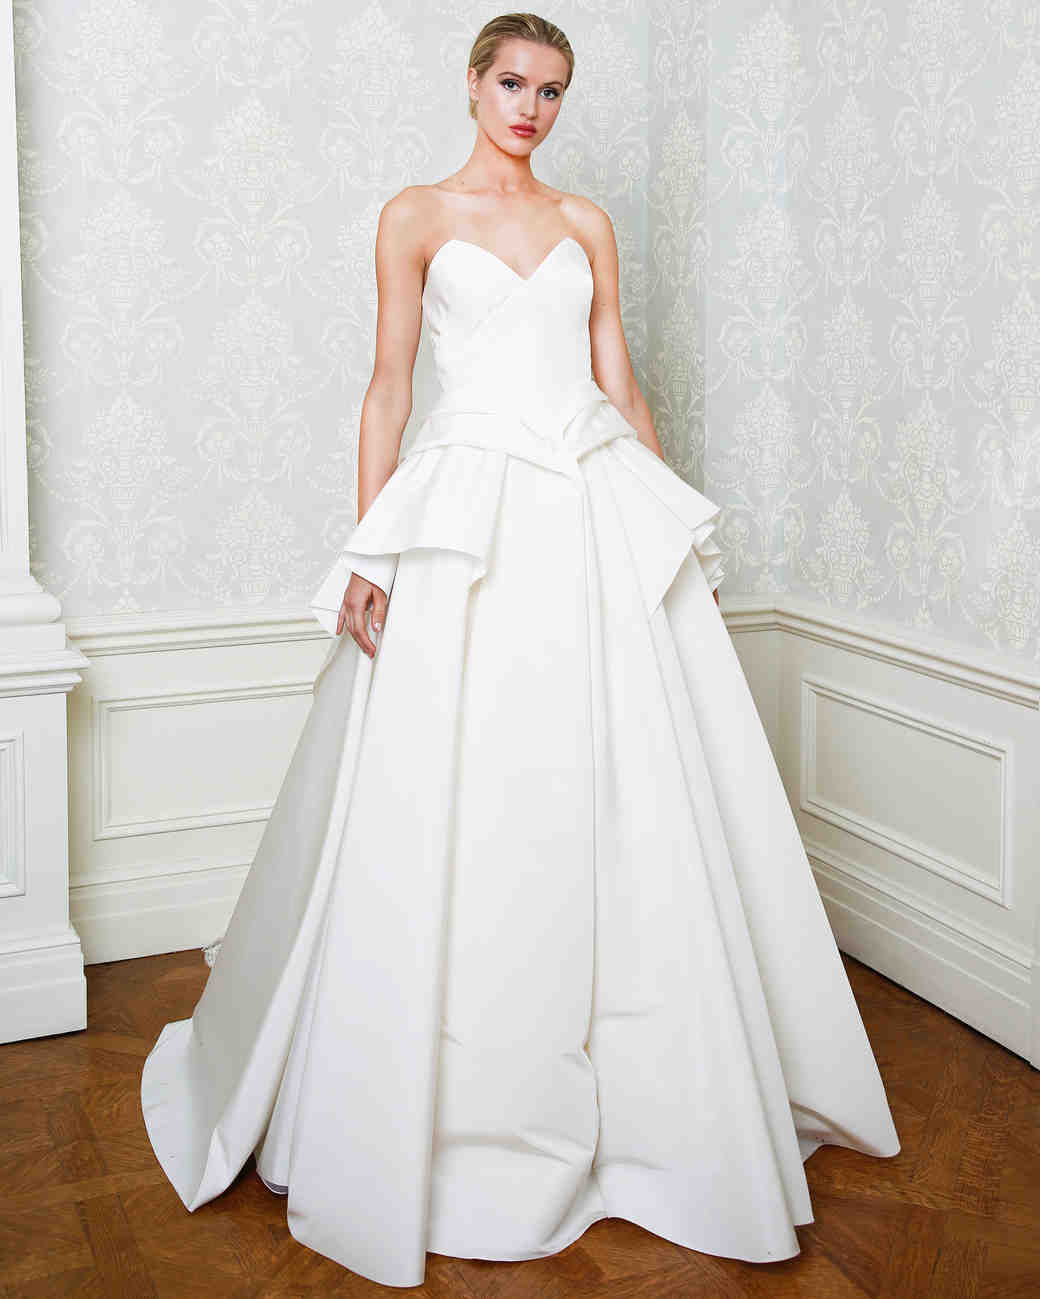 Cristina Ottaviano wedding dress spring 2019 sweetheart neckline tier skirt ballgown